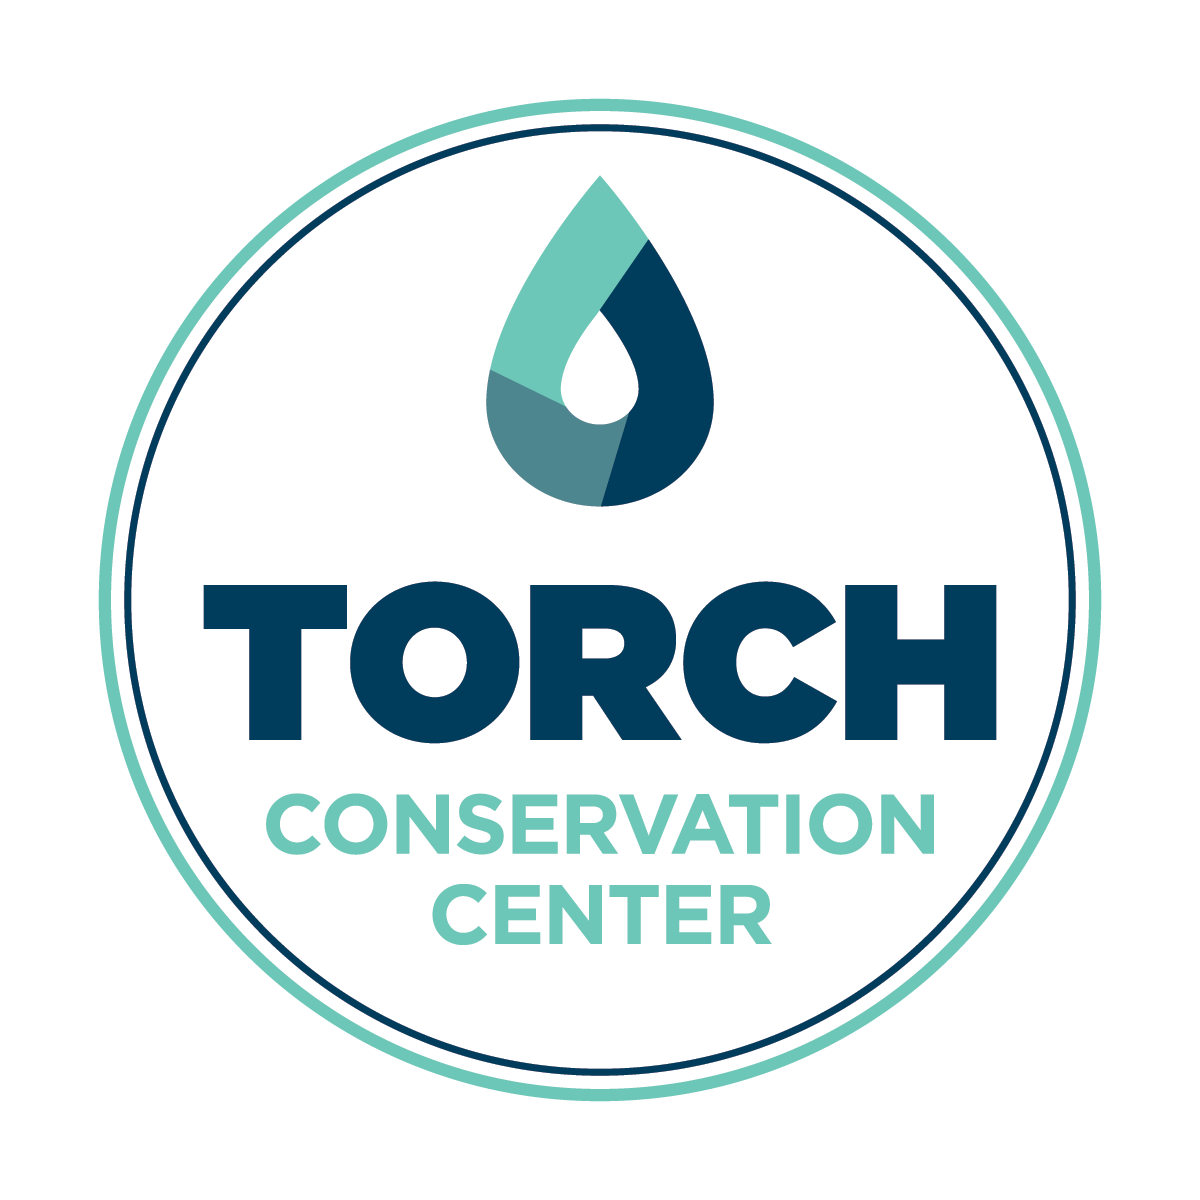 Torch Conservation Center